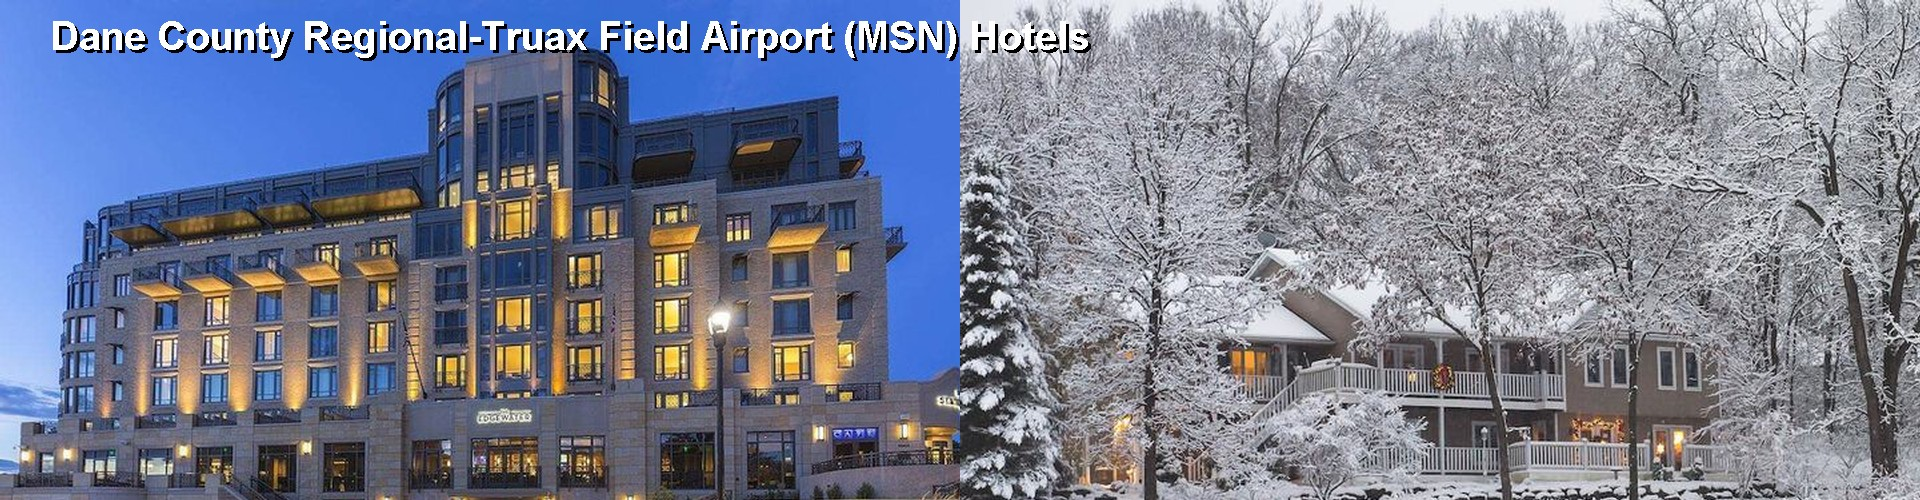 4 Best Hotels near Dane County Regional-Truax Field Airport (MSN)